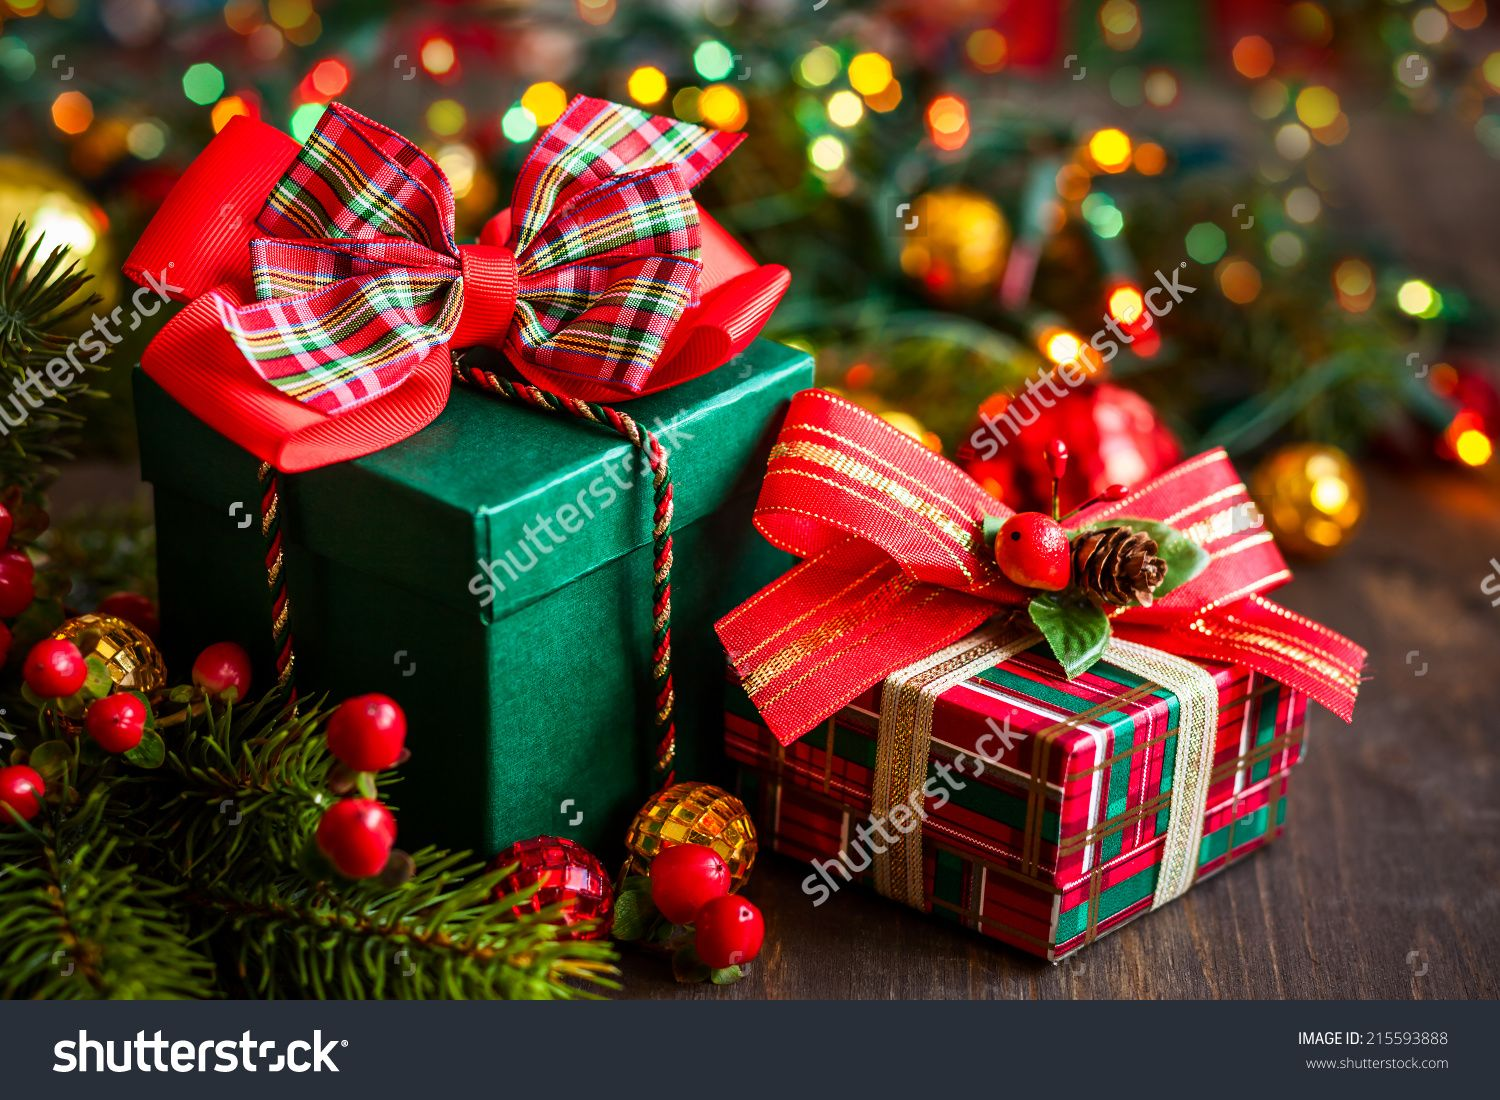 christmas gift boxes with decorations foto stock 215593888 shutterstock - Christmas Gift Box Decorations